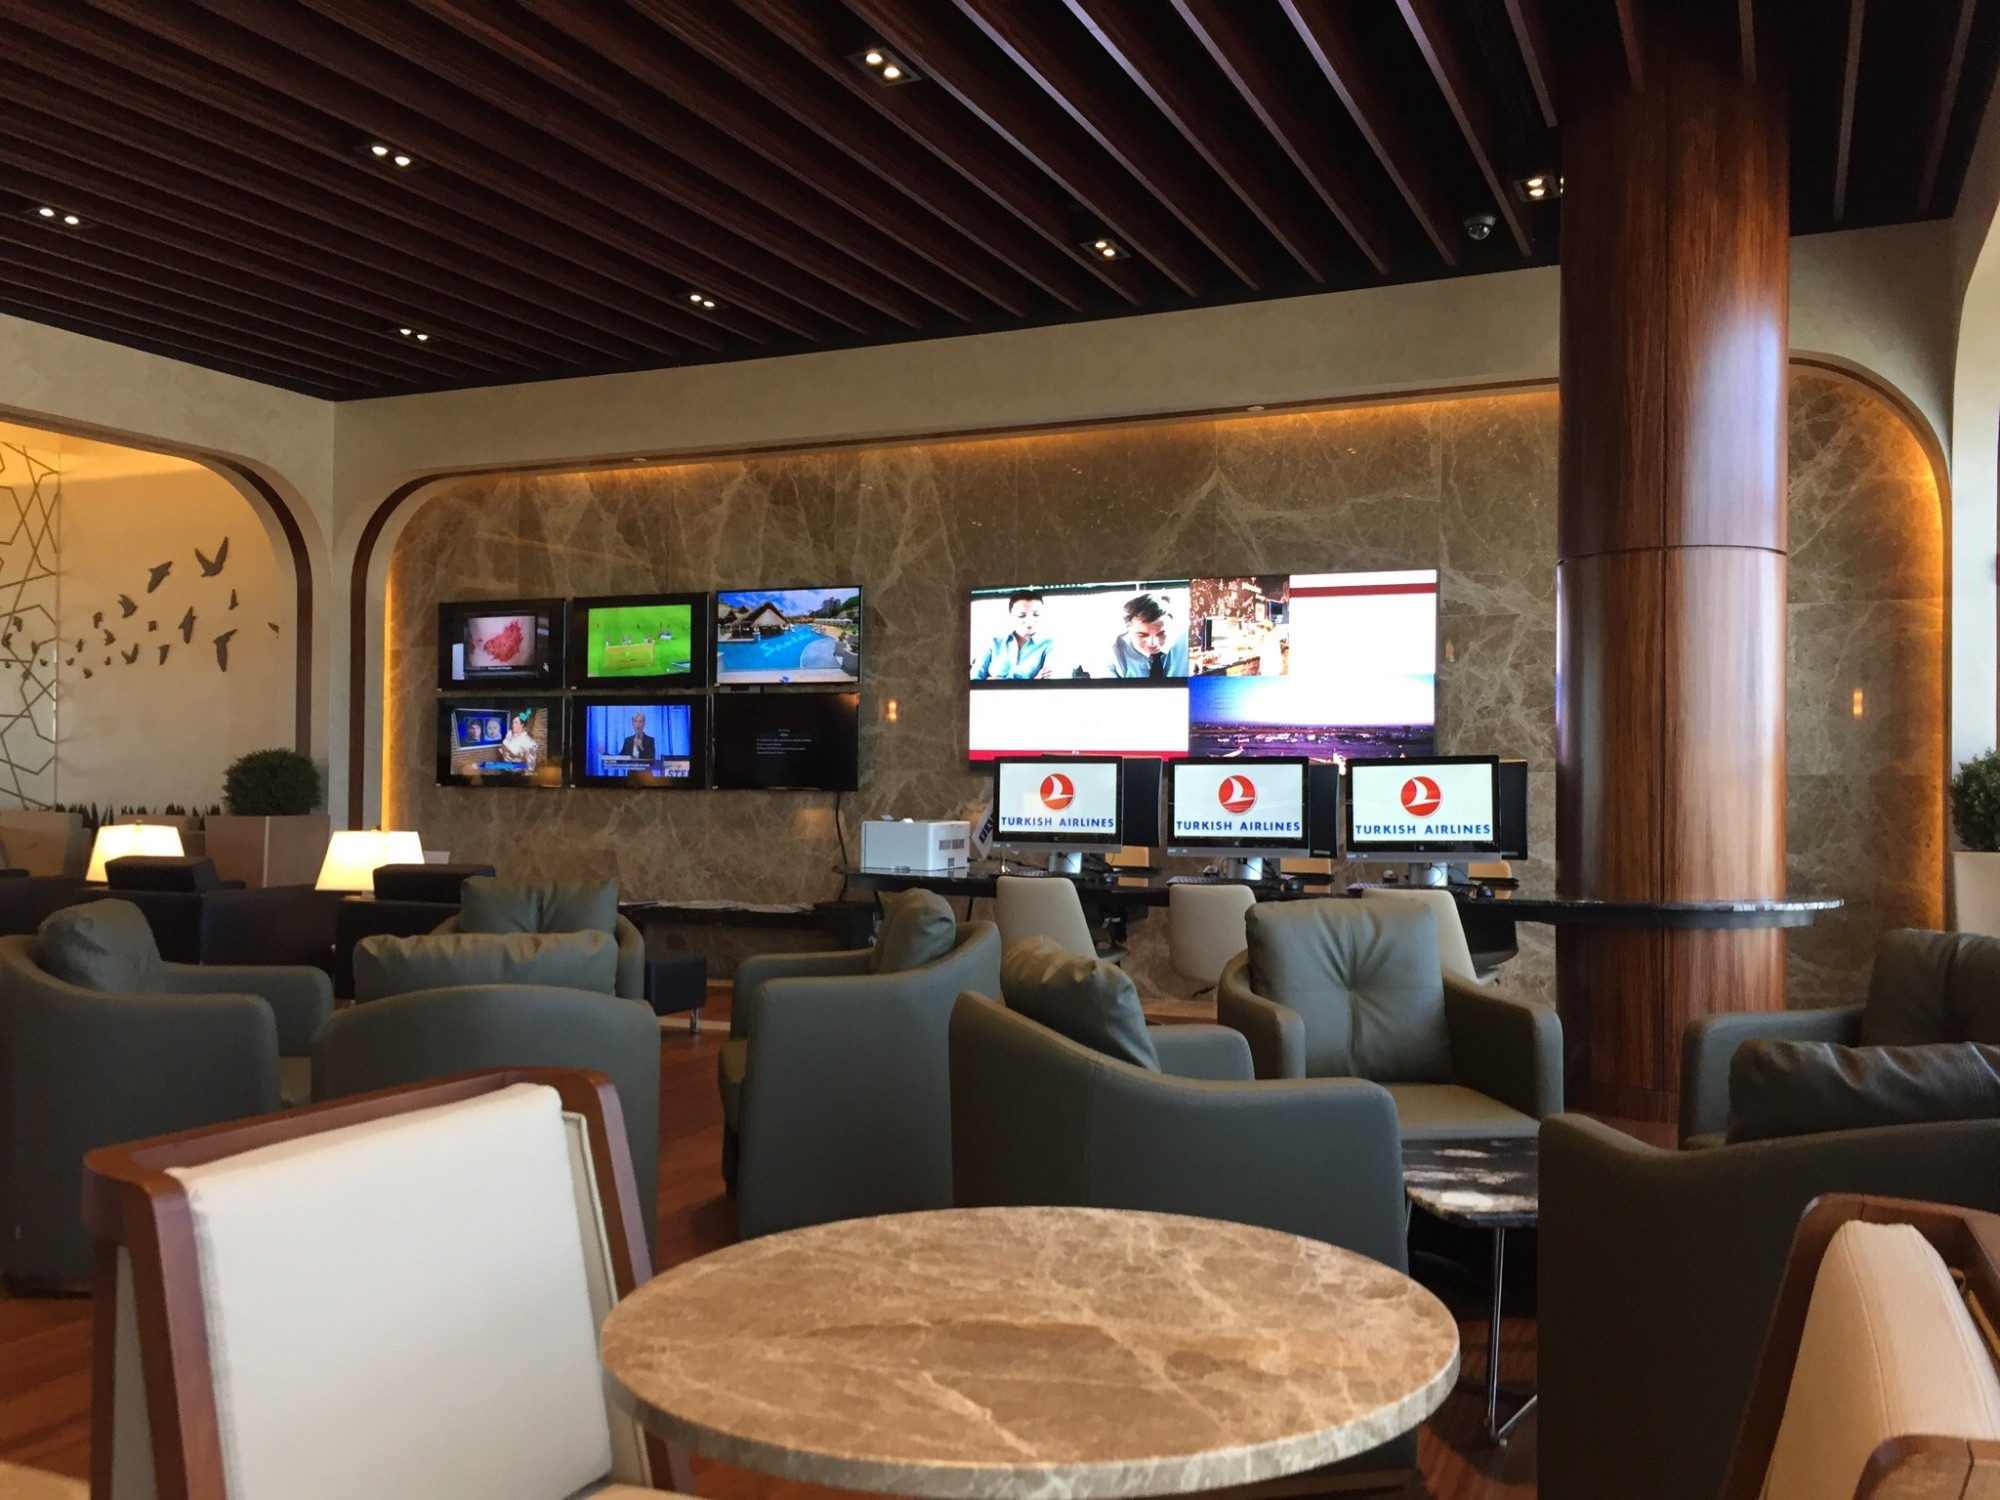 IAD Turkish Airlines Lounge Washington D C Reviews & s